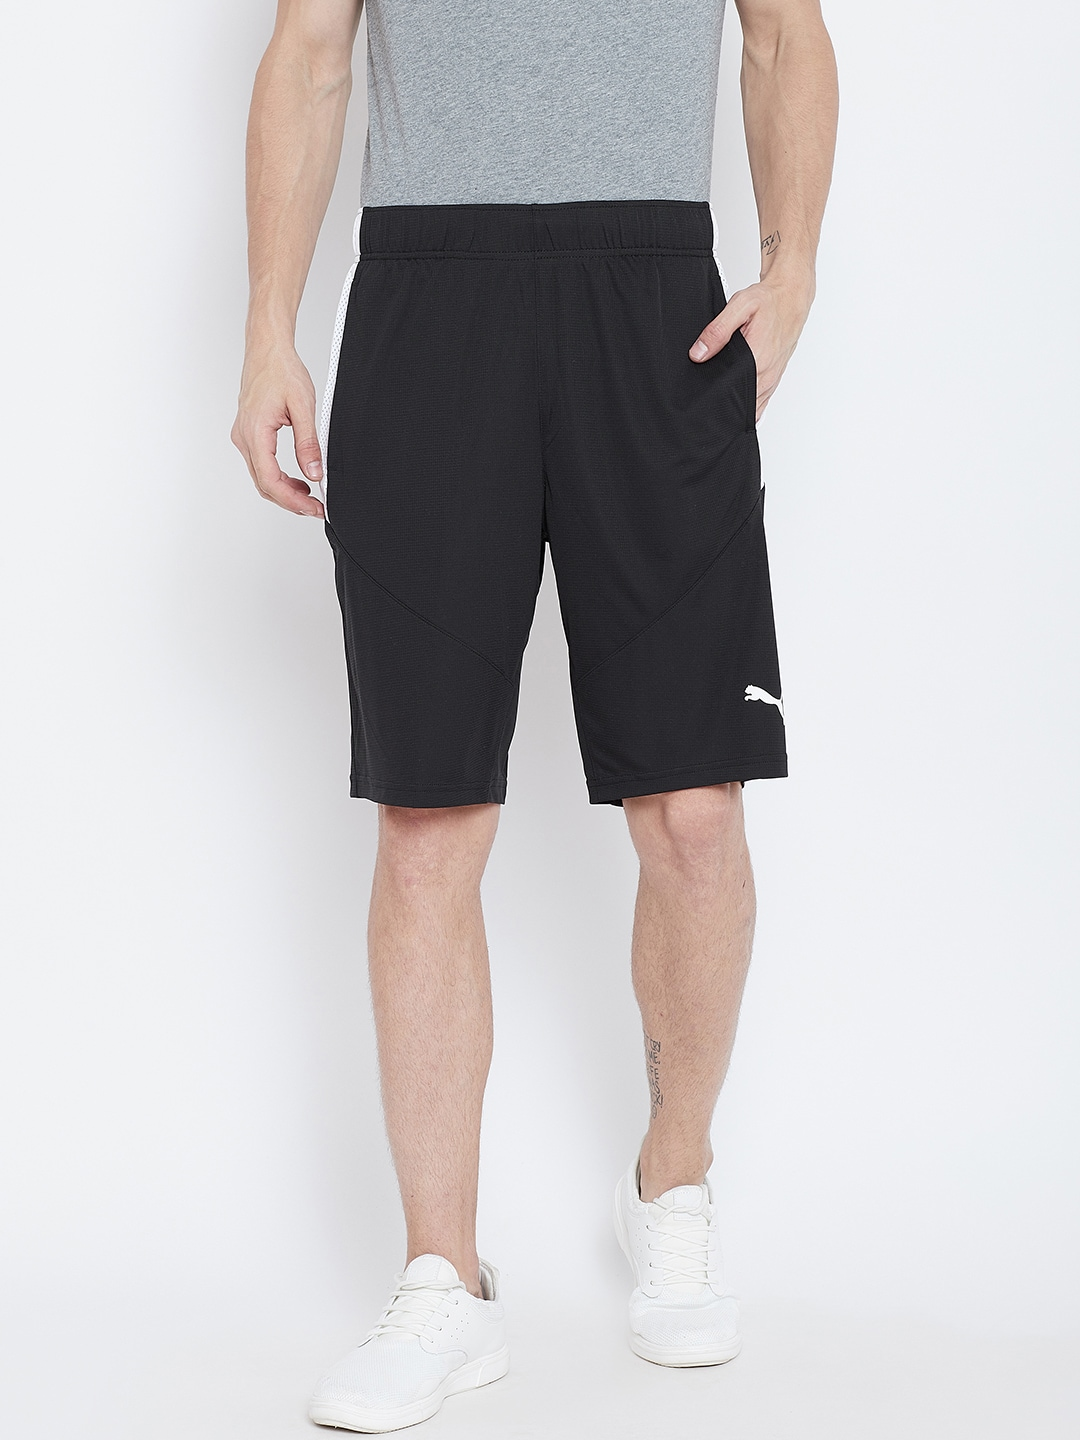 c78ed6e9ca9b Puma Shorts - Buy Puma Shorts For Mens Online